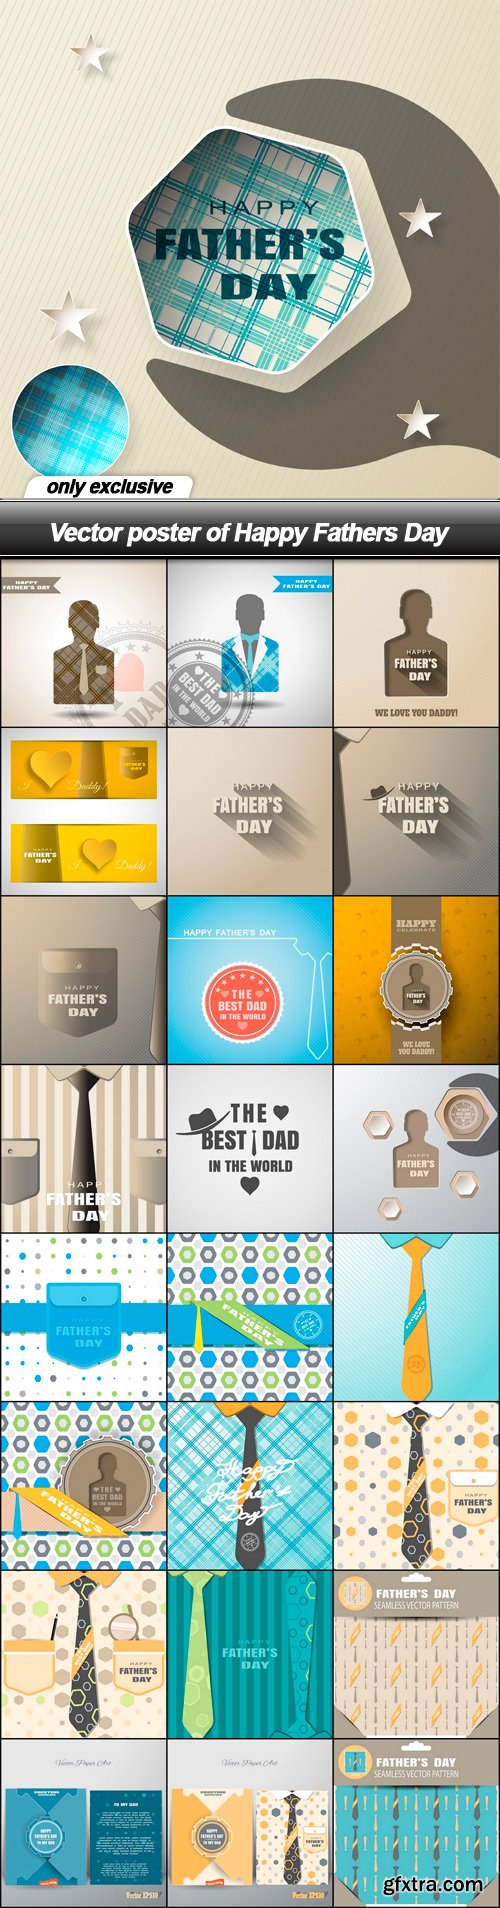 Vector poster of Happy Fathers Day - 25 EPS